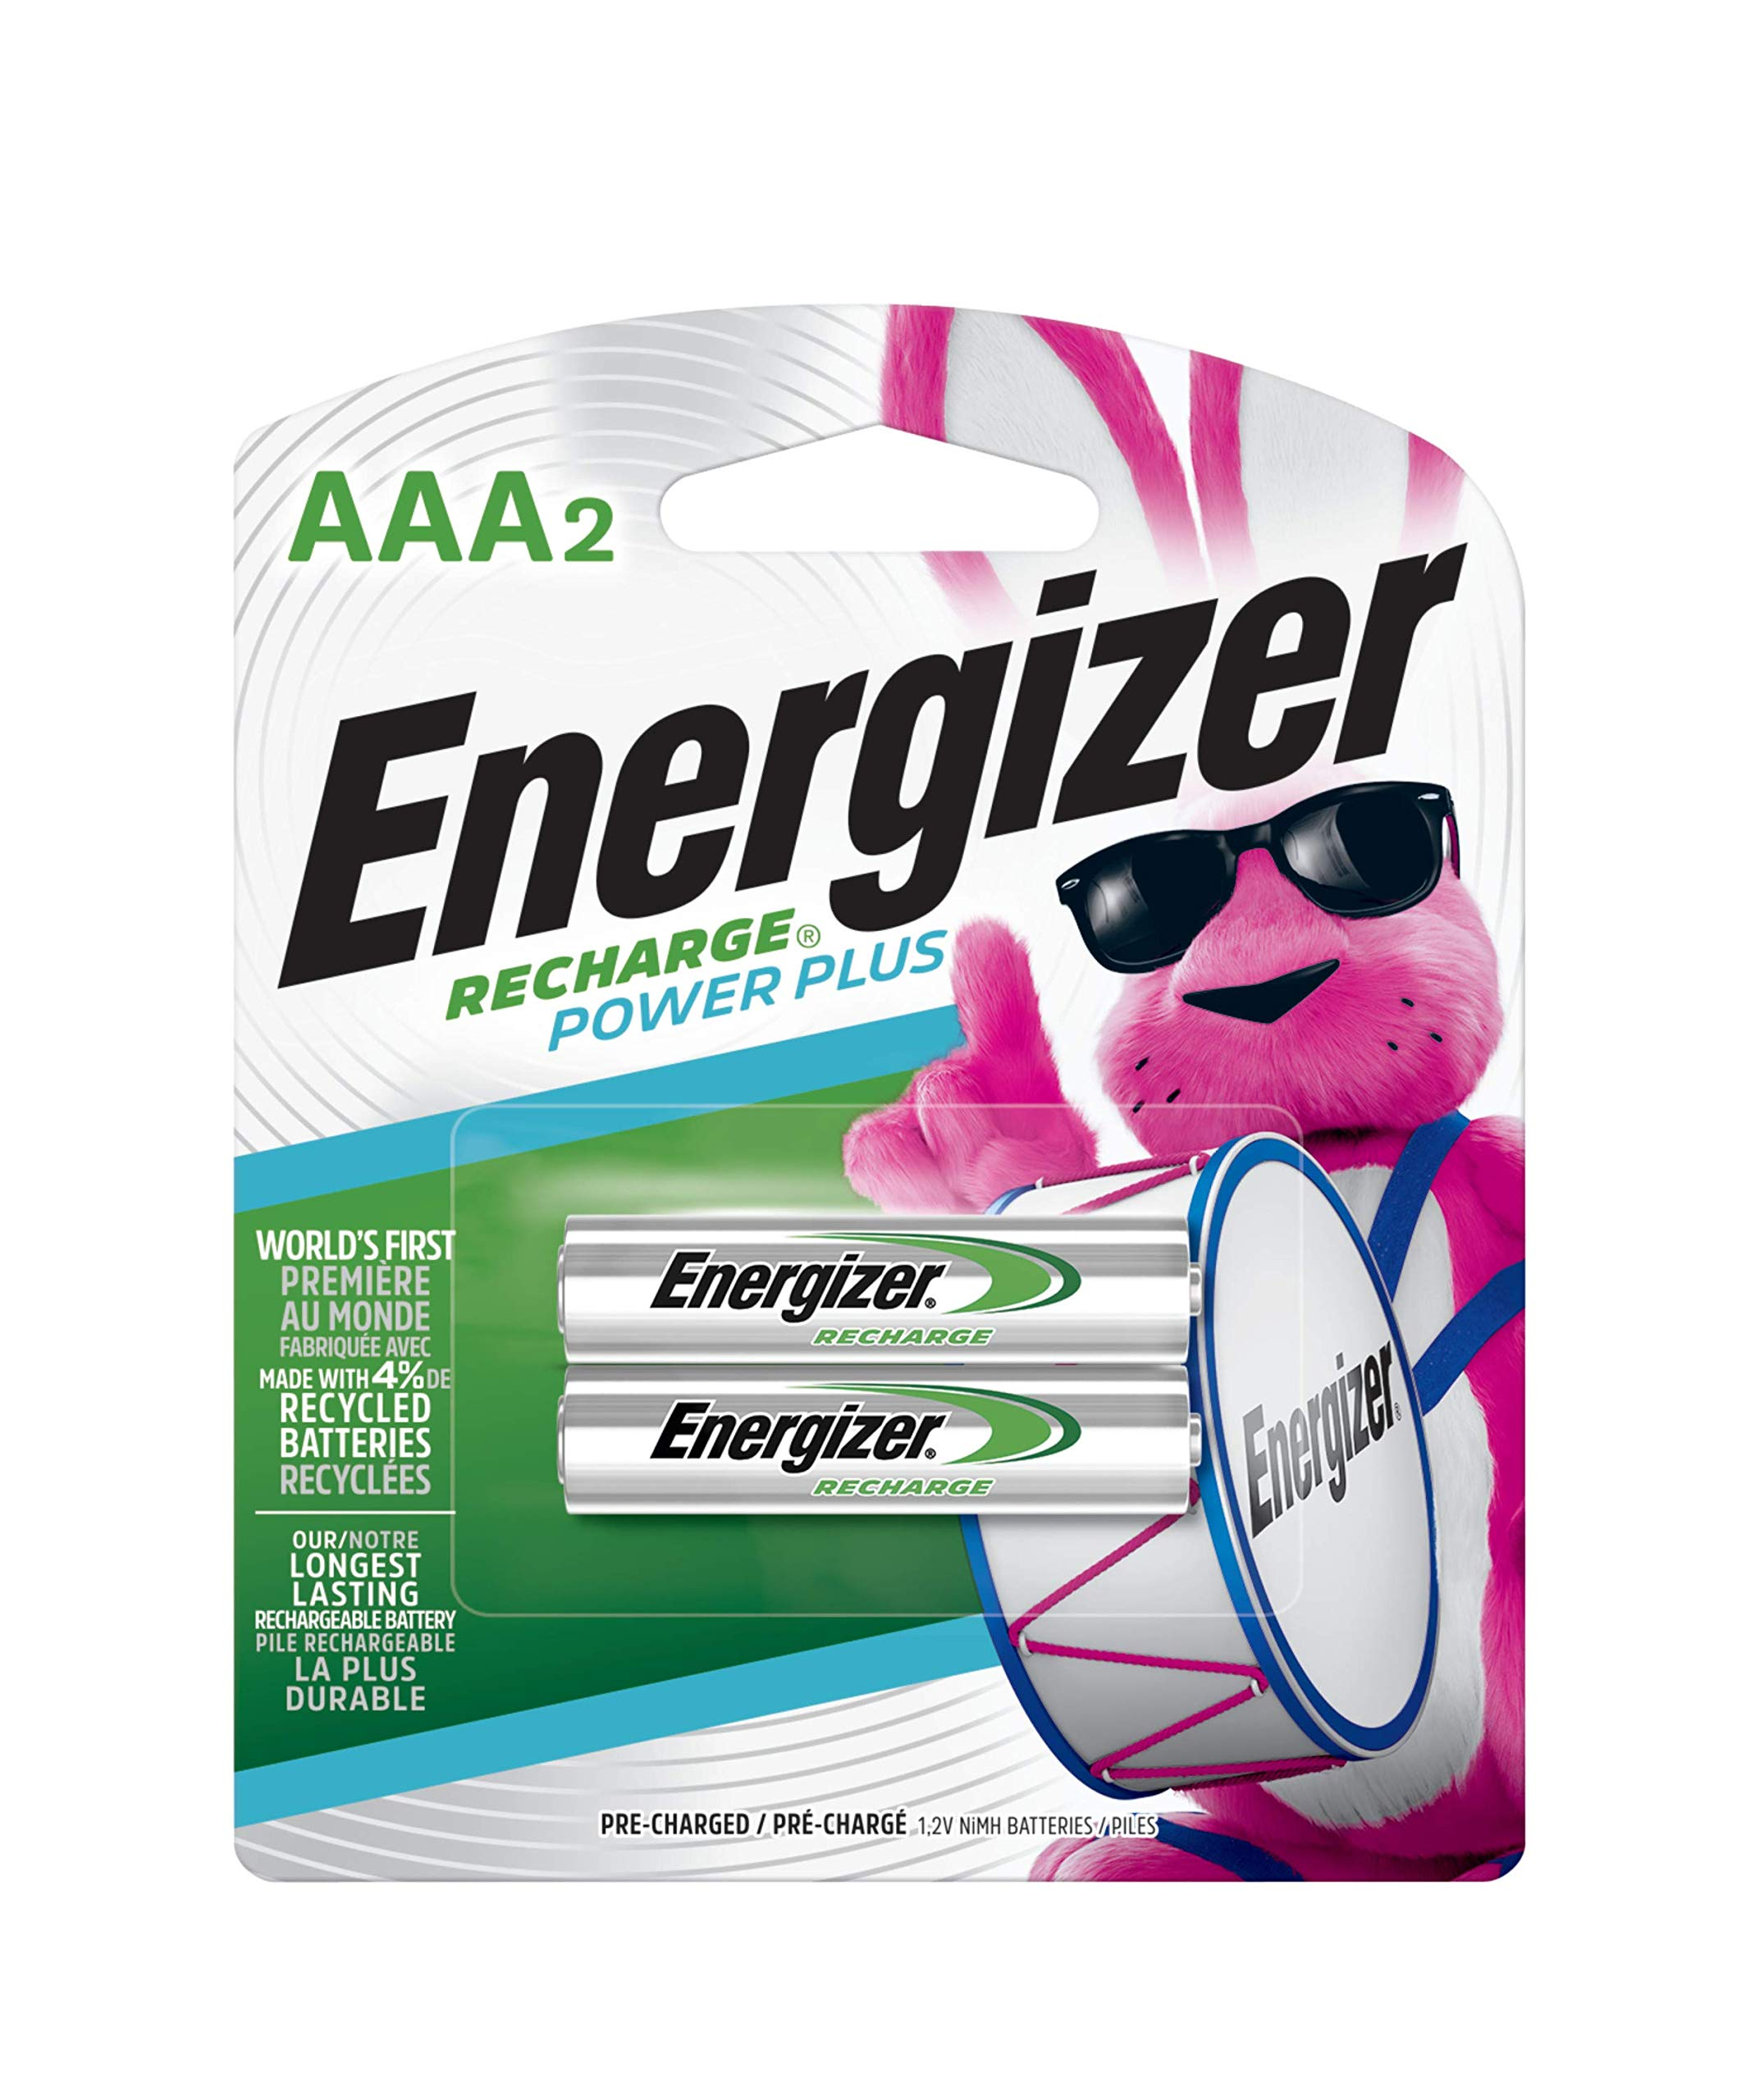 Energizer Rechargeable AAA Batteries, NiMH, 2300 mAh, Pre-Charged, 2 Count (Recharge Power Plus)